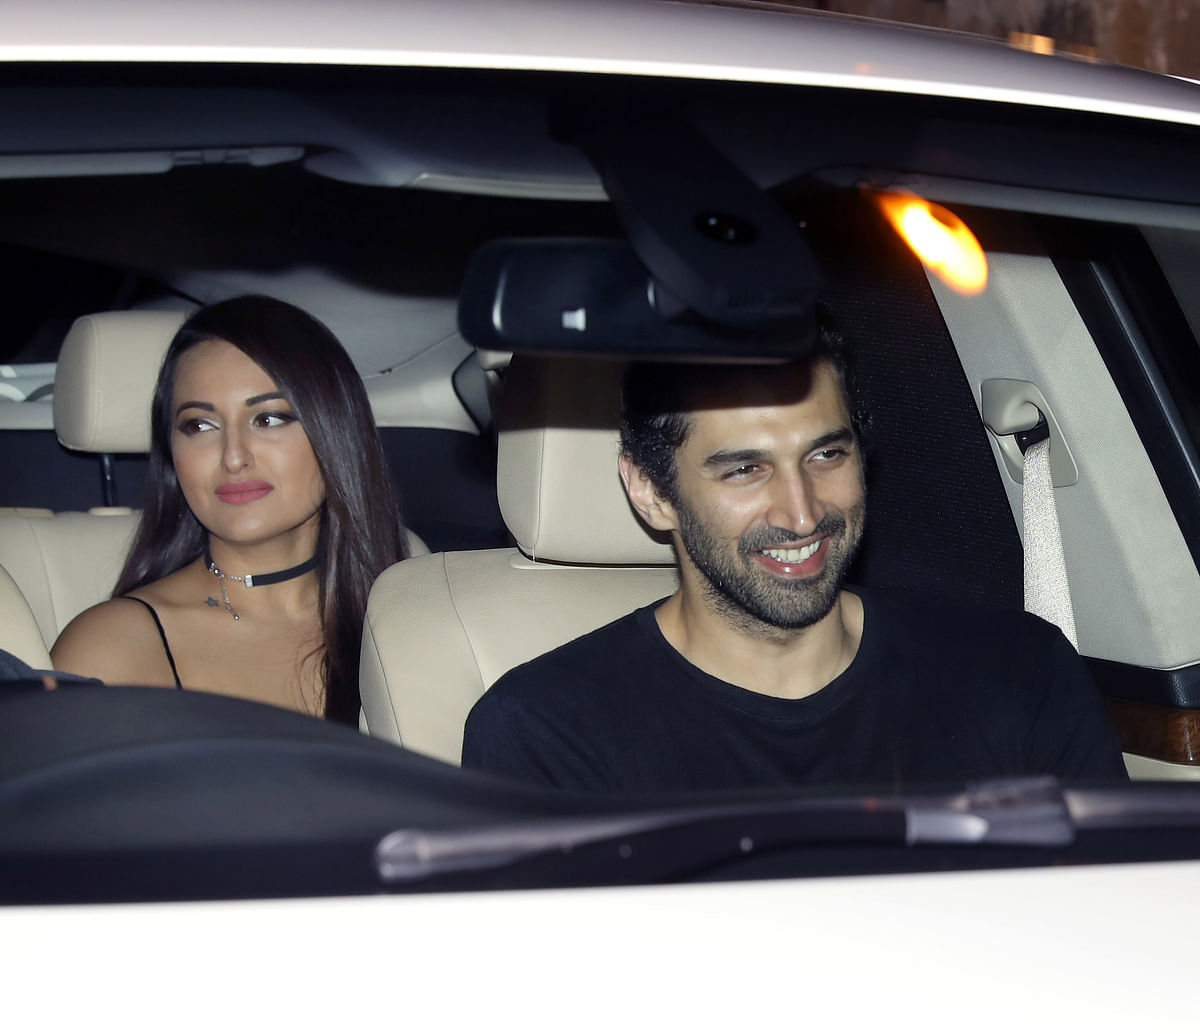 Aditya Roy Kapoor and Sonakshi Sinha came in together, but they're definitely not seeing each other.